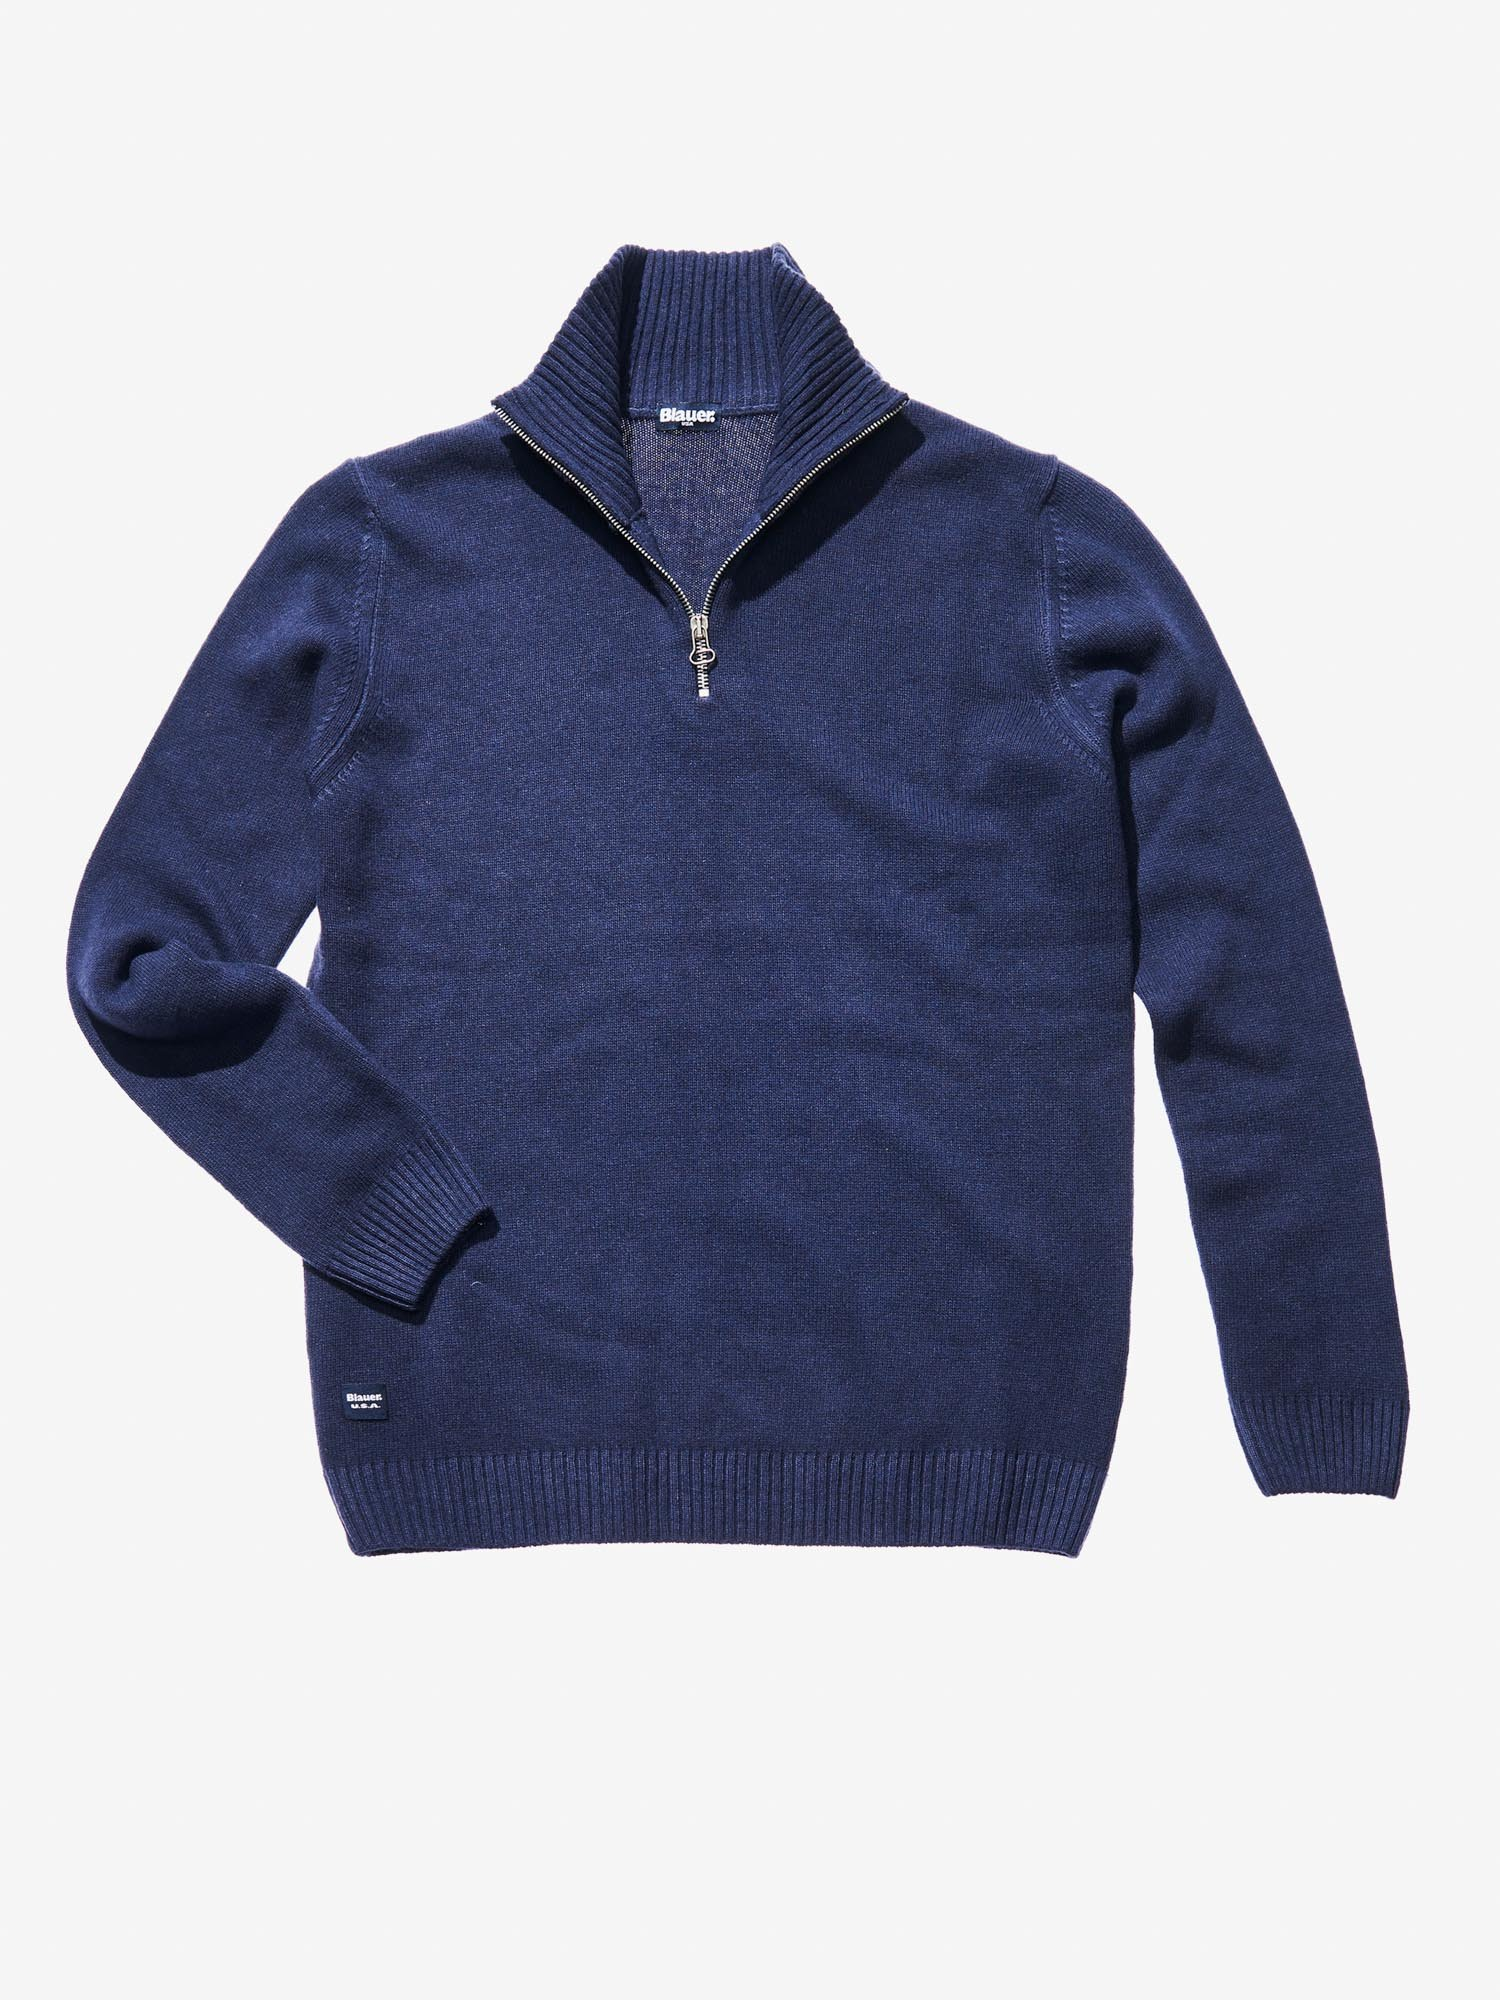 HIGH NECK SWEATER WITH ZIP - Blauer